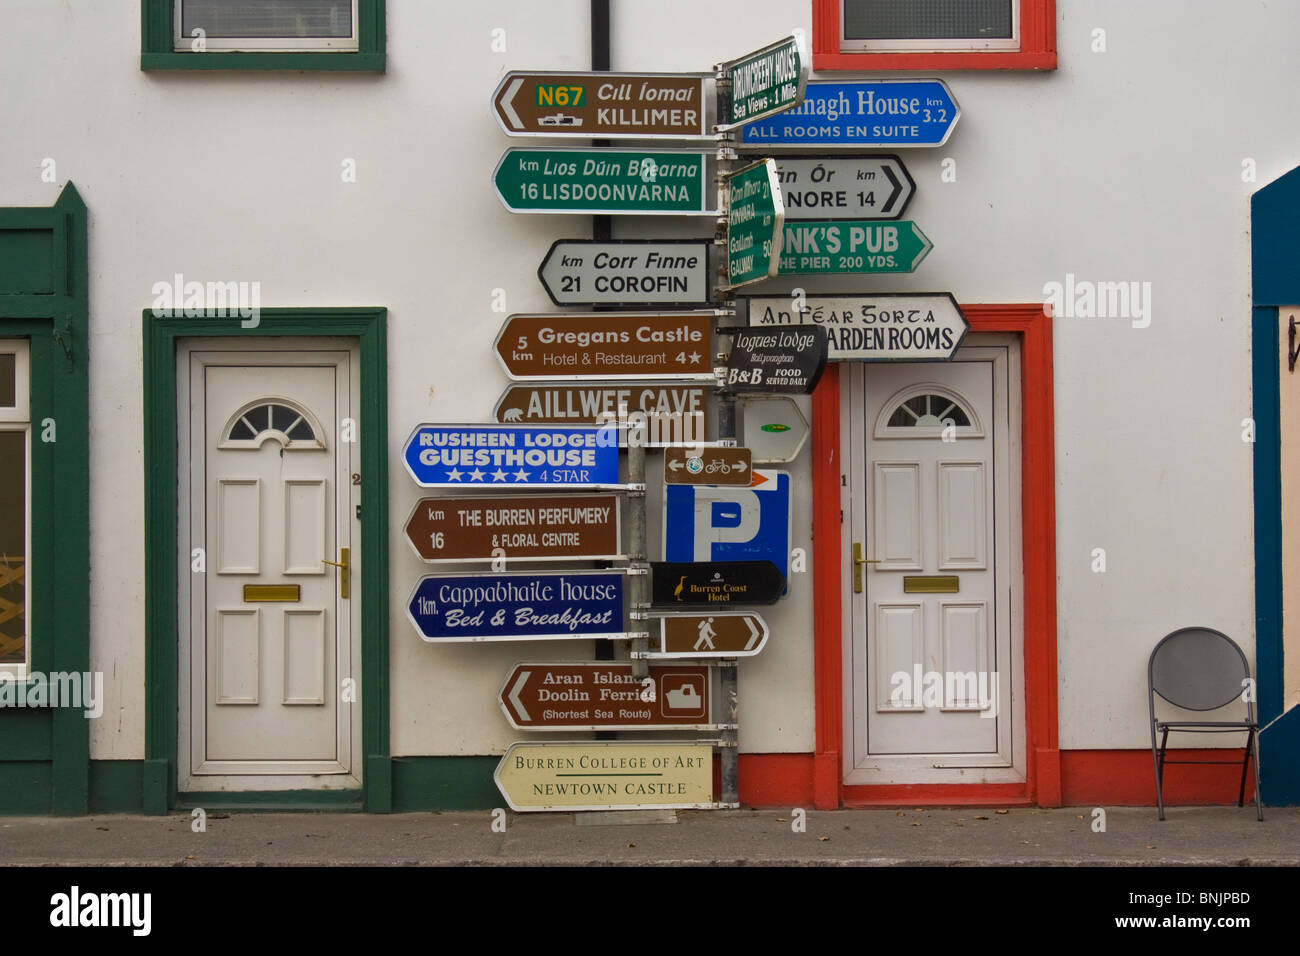 Signs in Ballyvaughan - Stock Image